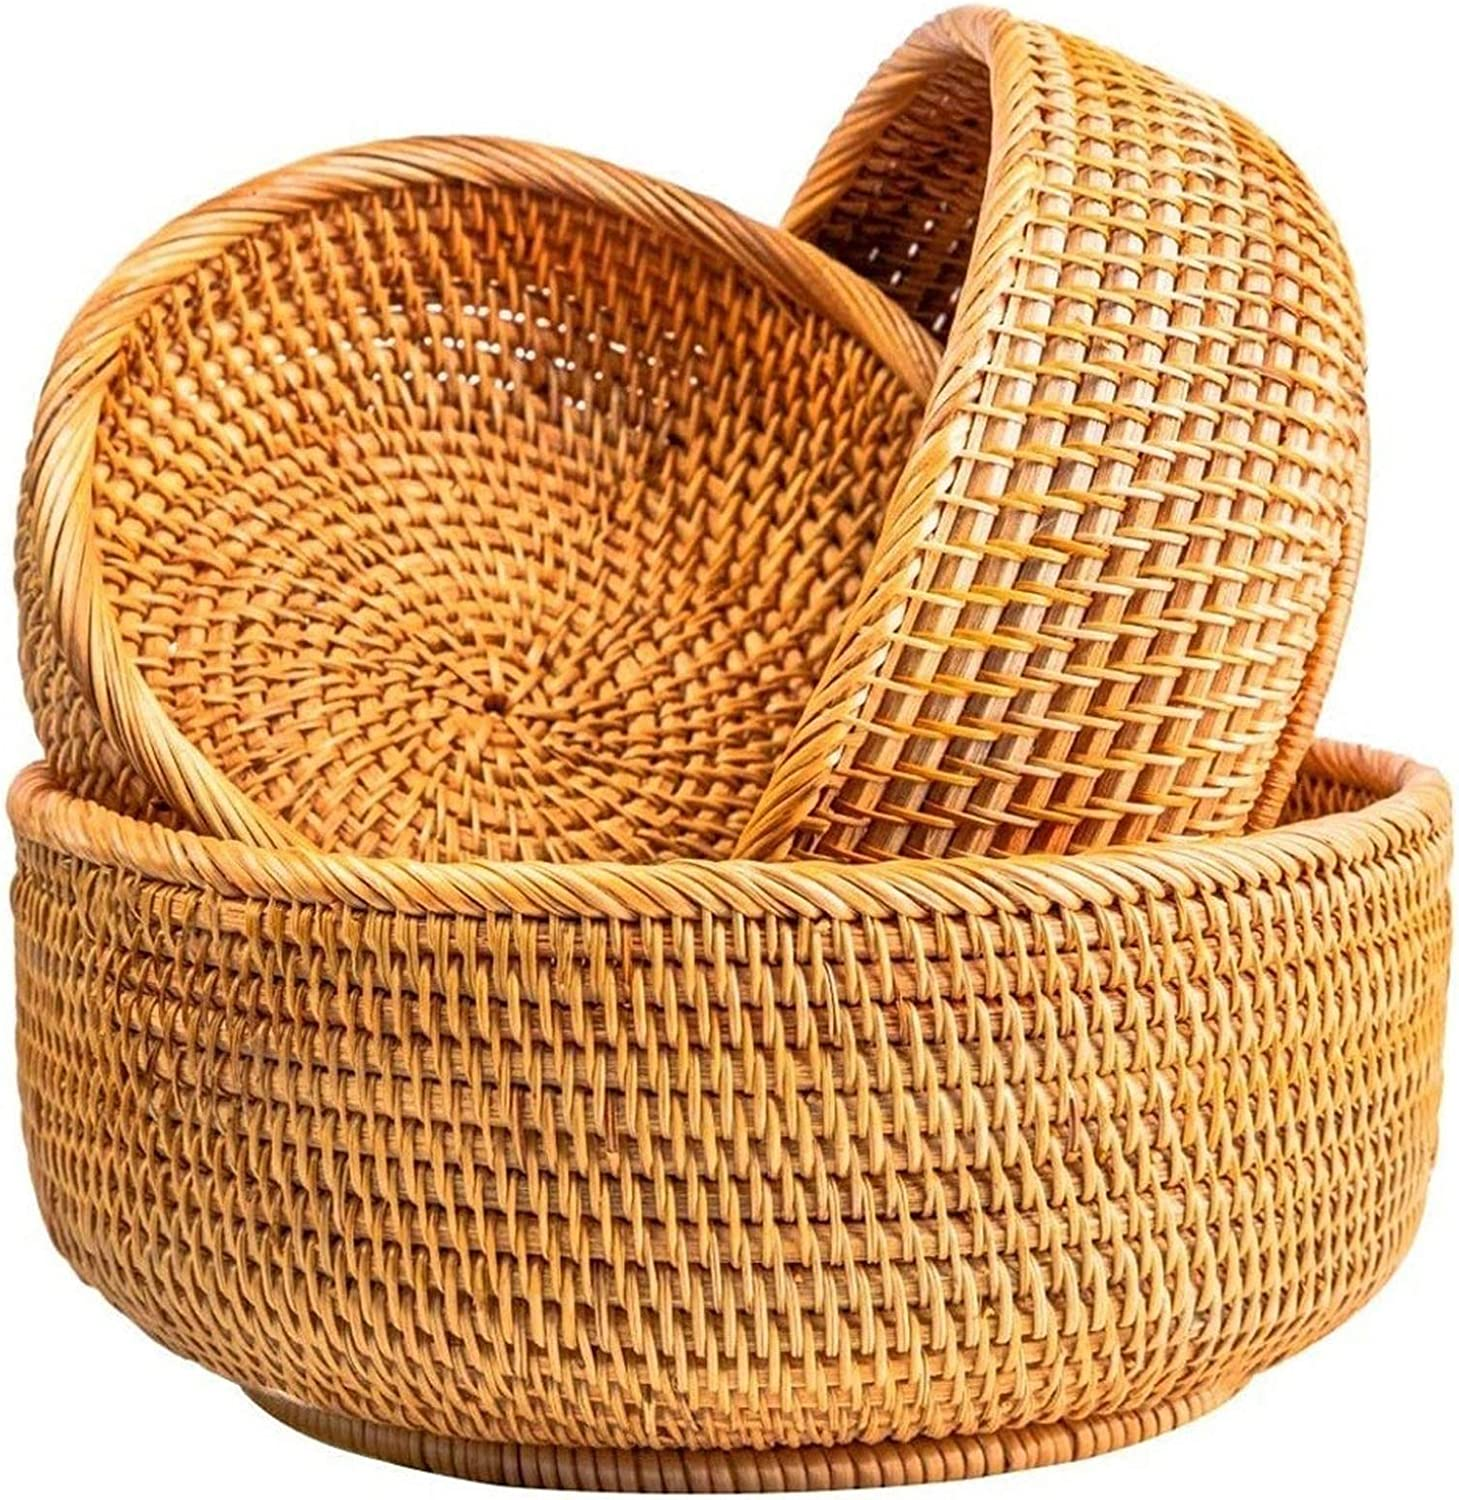 Dealing full price reduction Storage Basket Baskets for Vegetable Ra Handmade Round Long Beach Mall Woven Lid